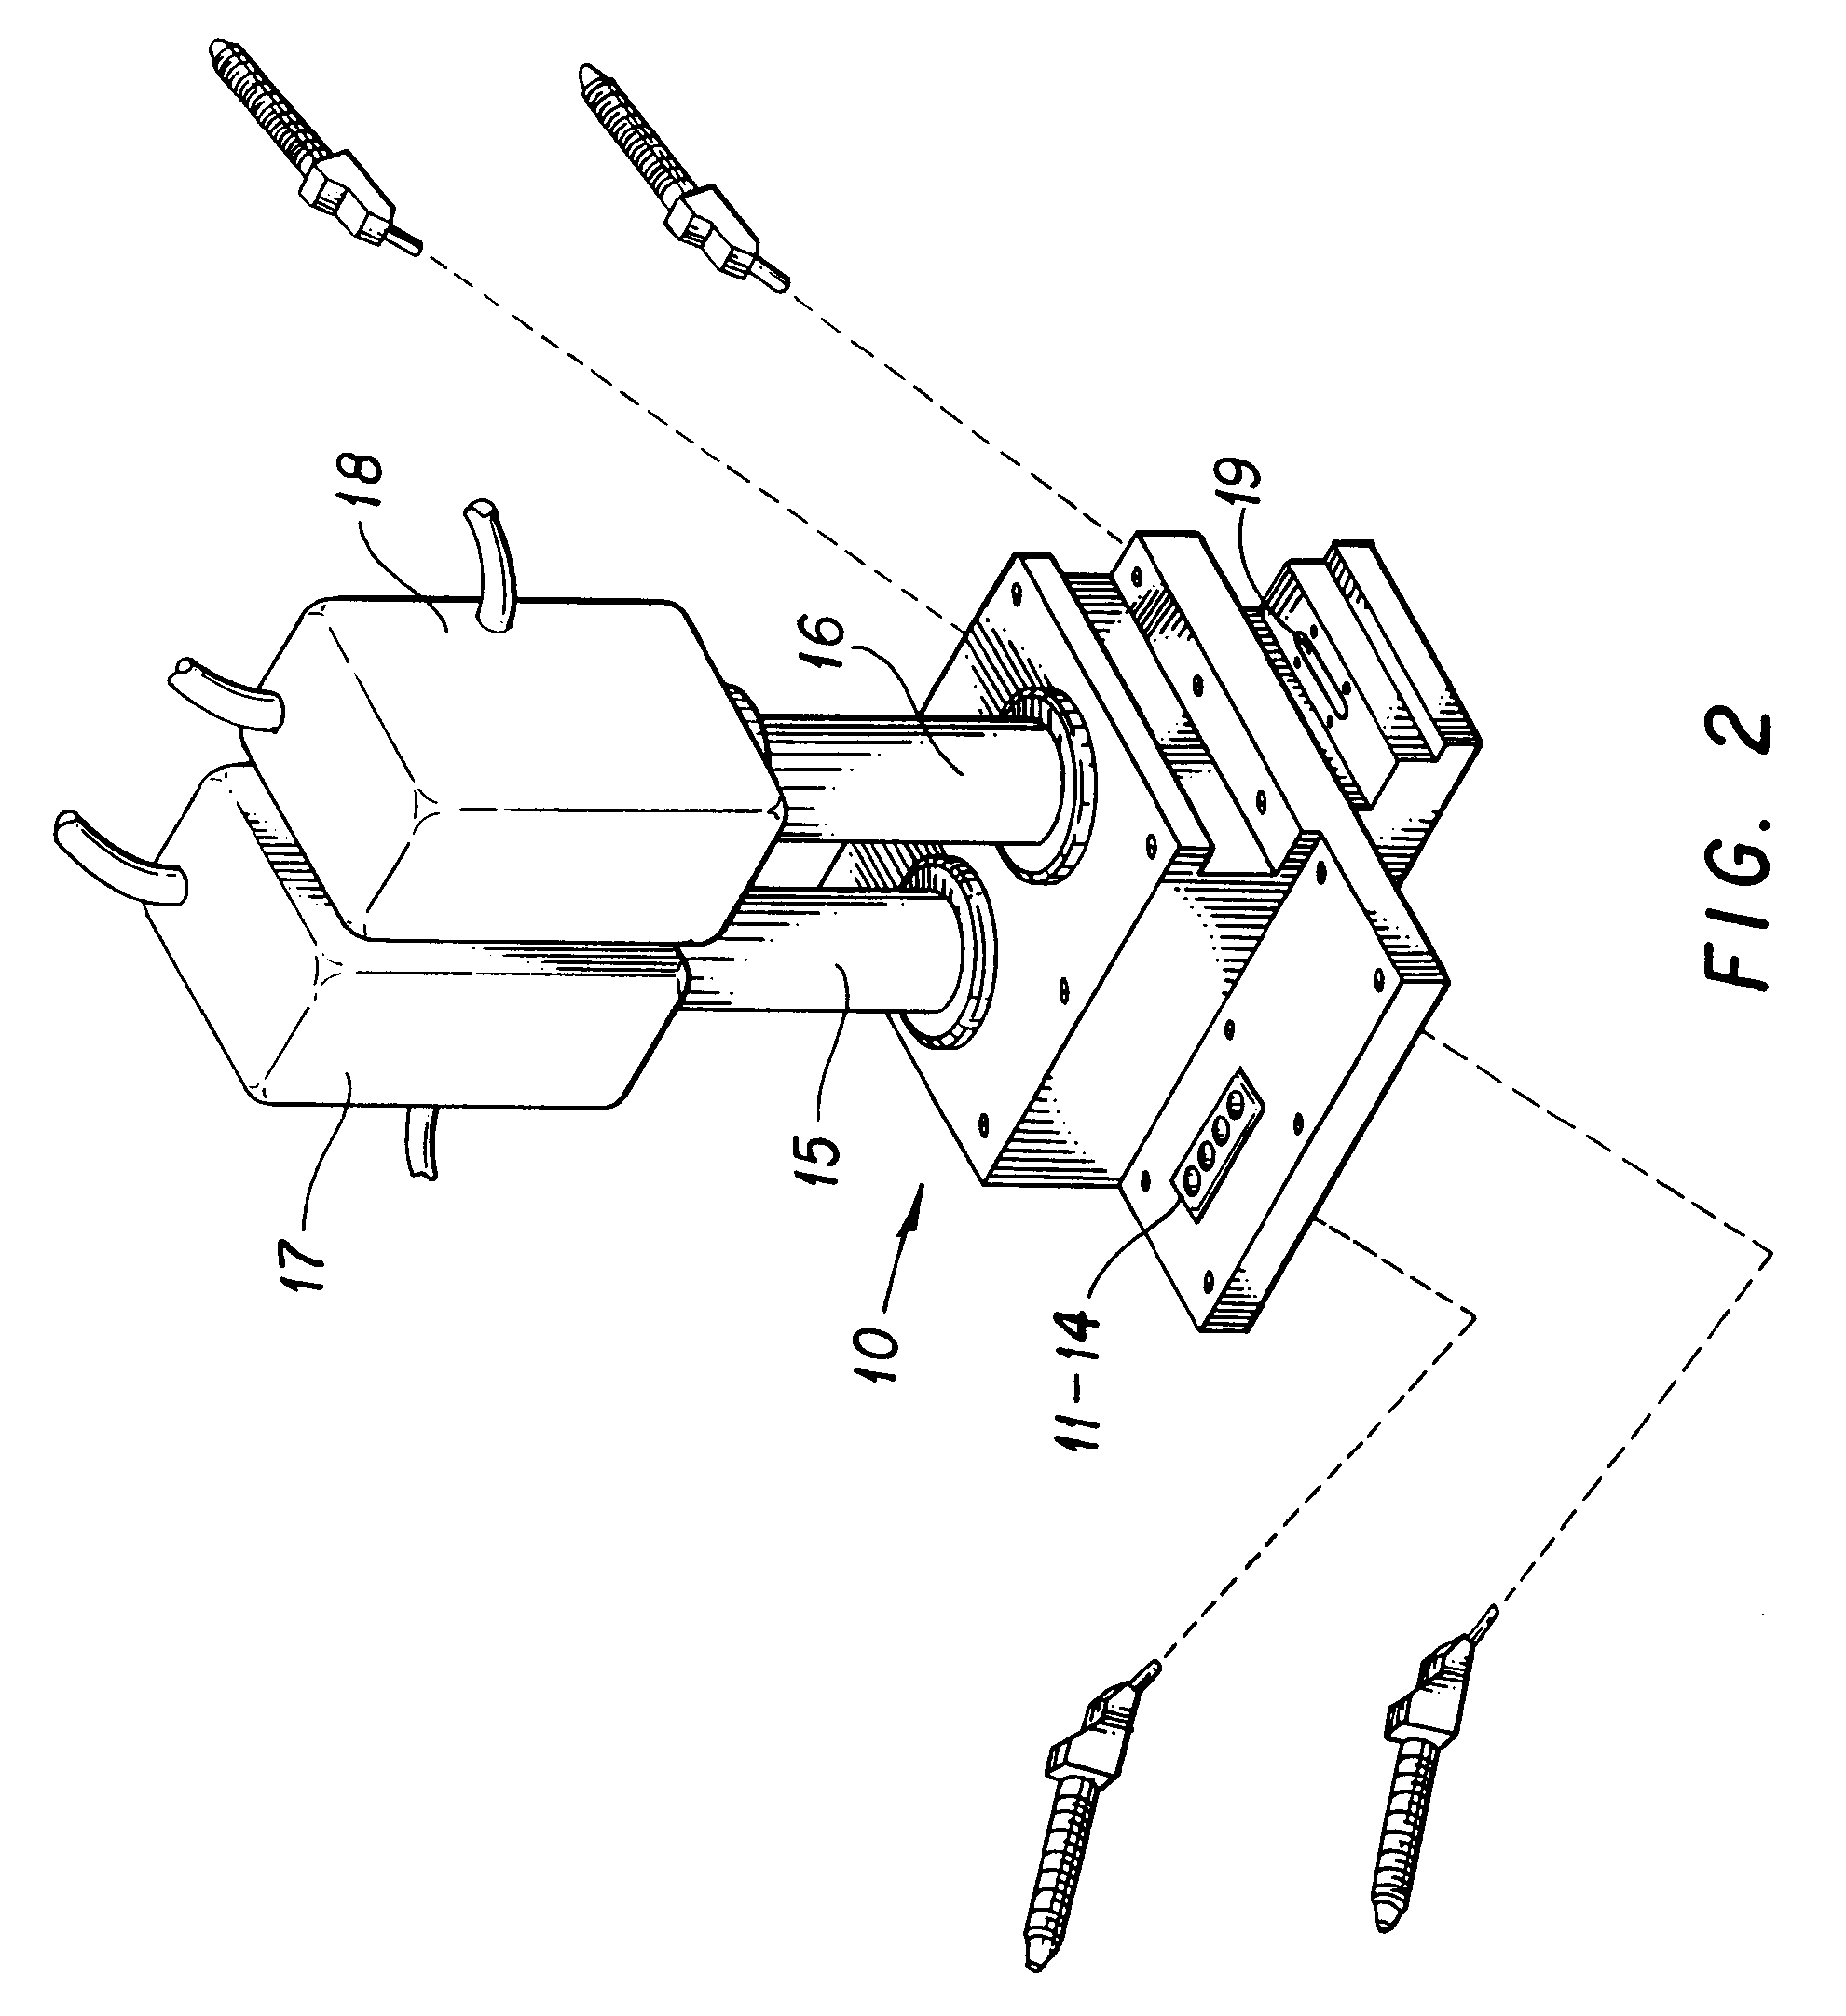 patent ep0424634b1 method and apparatus for heterogeneous Silicon Controlled Rectifier patent drawing